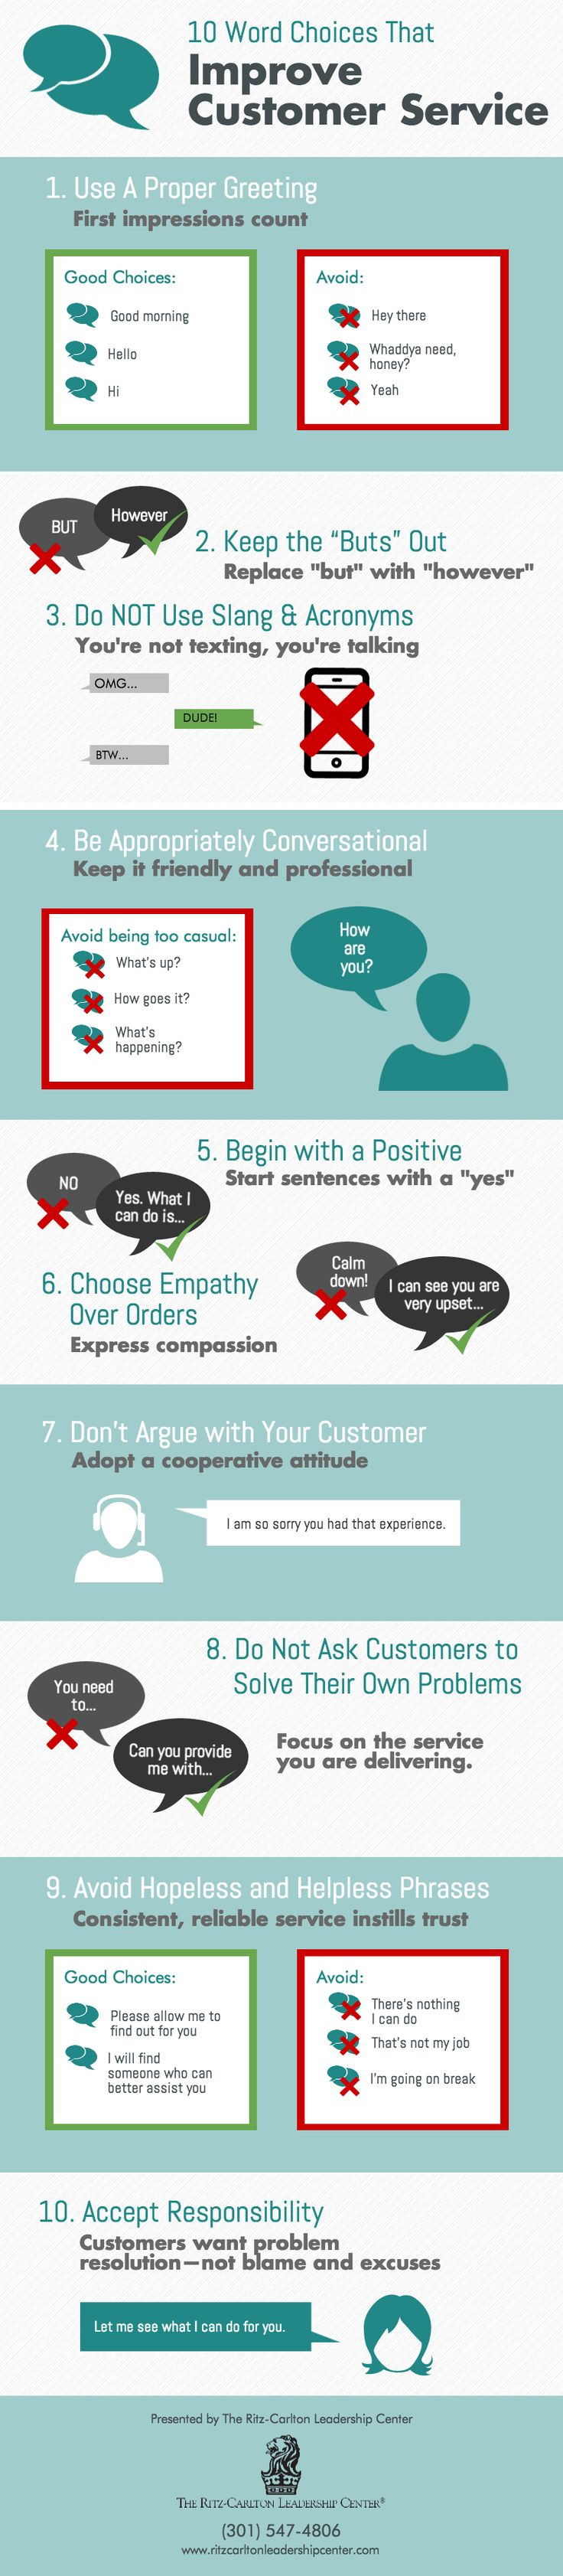 best ideas about customer service training this customer service infographic from the ritz carlton leadership center offers 10 word choices that will help you improve customer service skills more